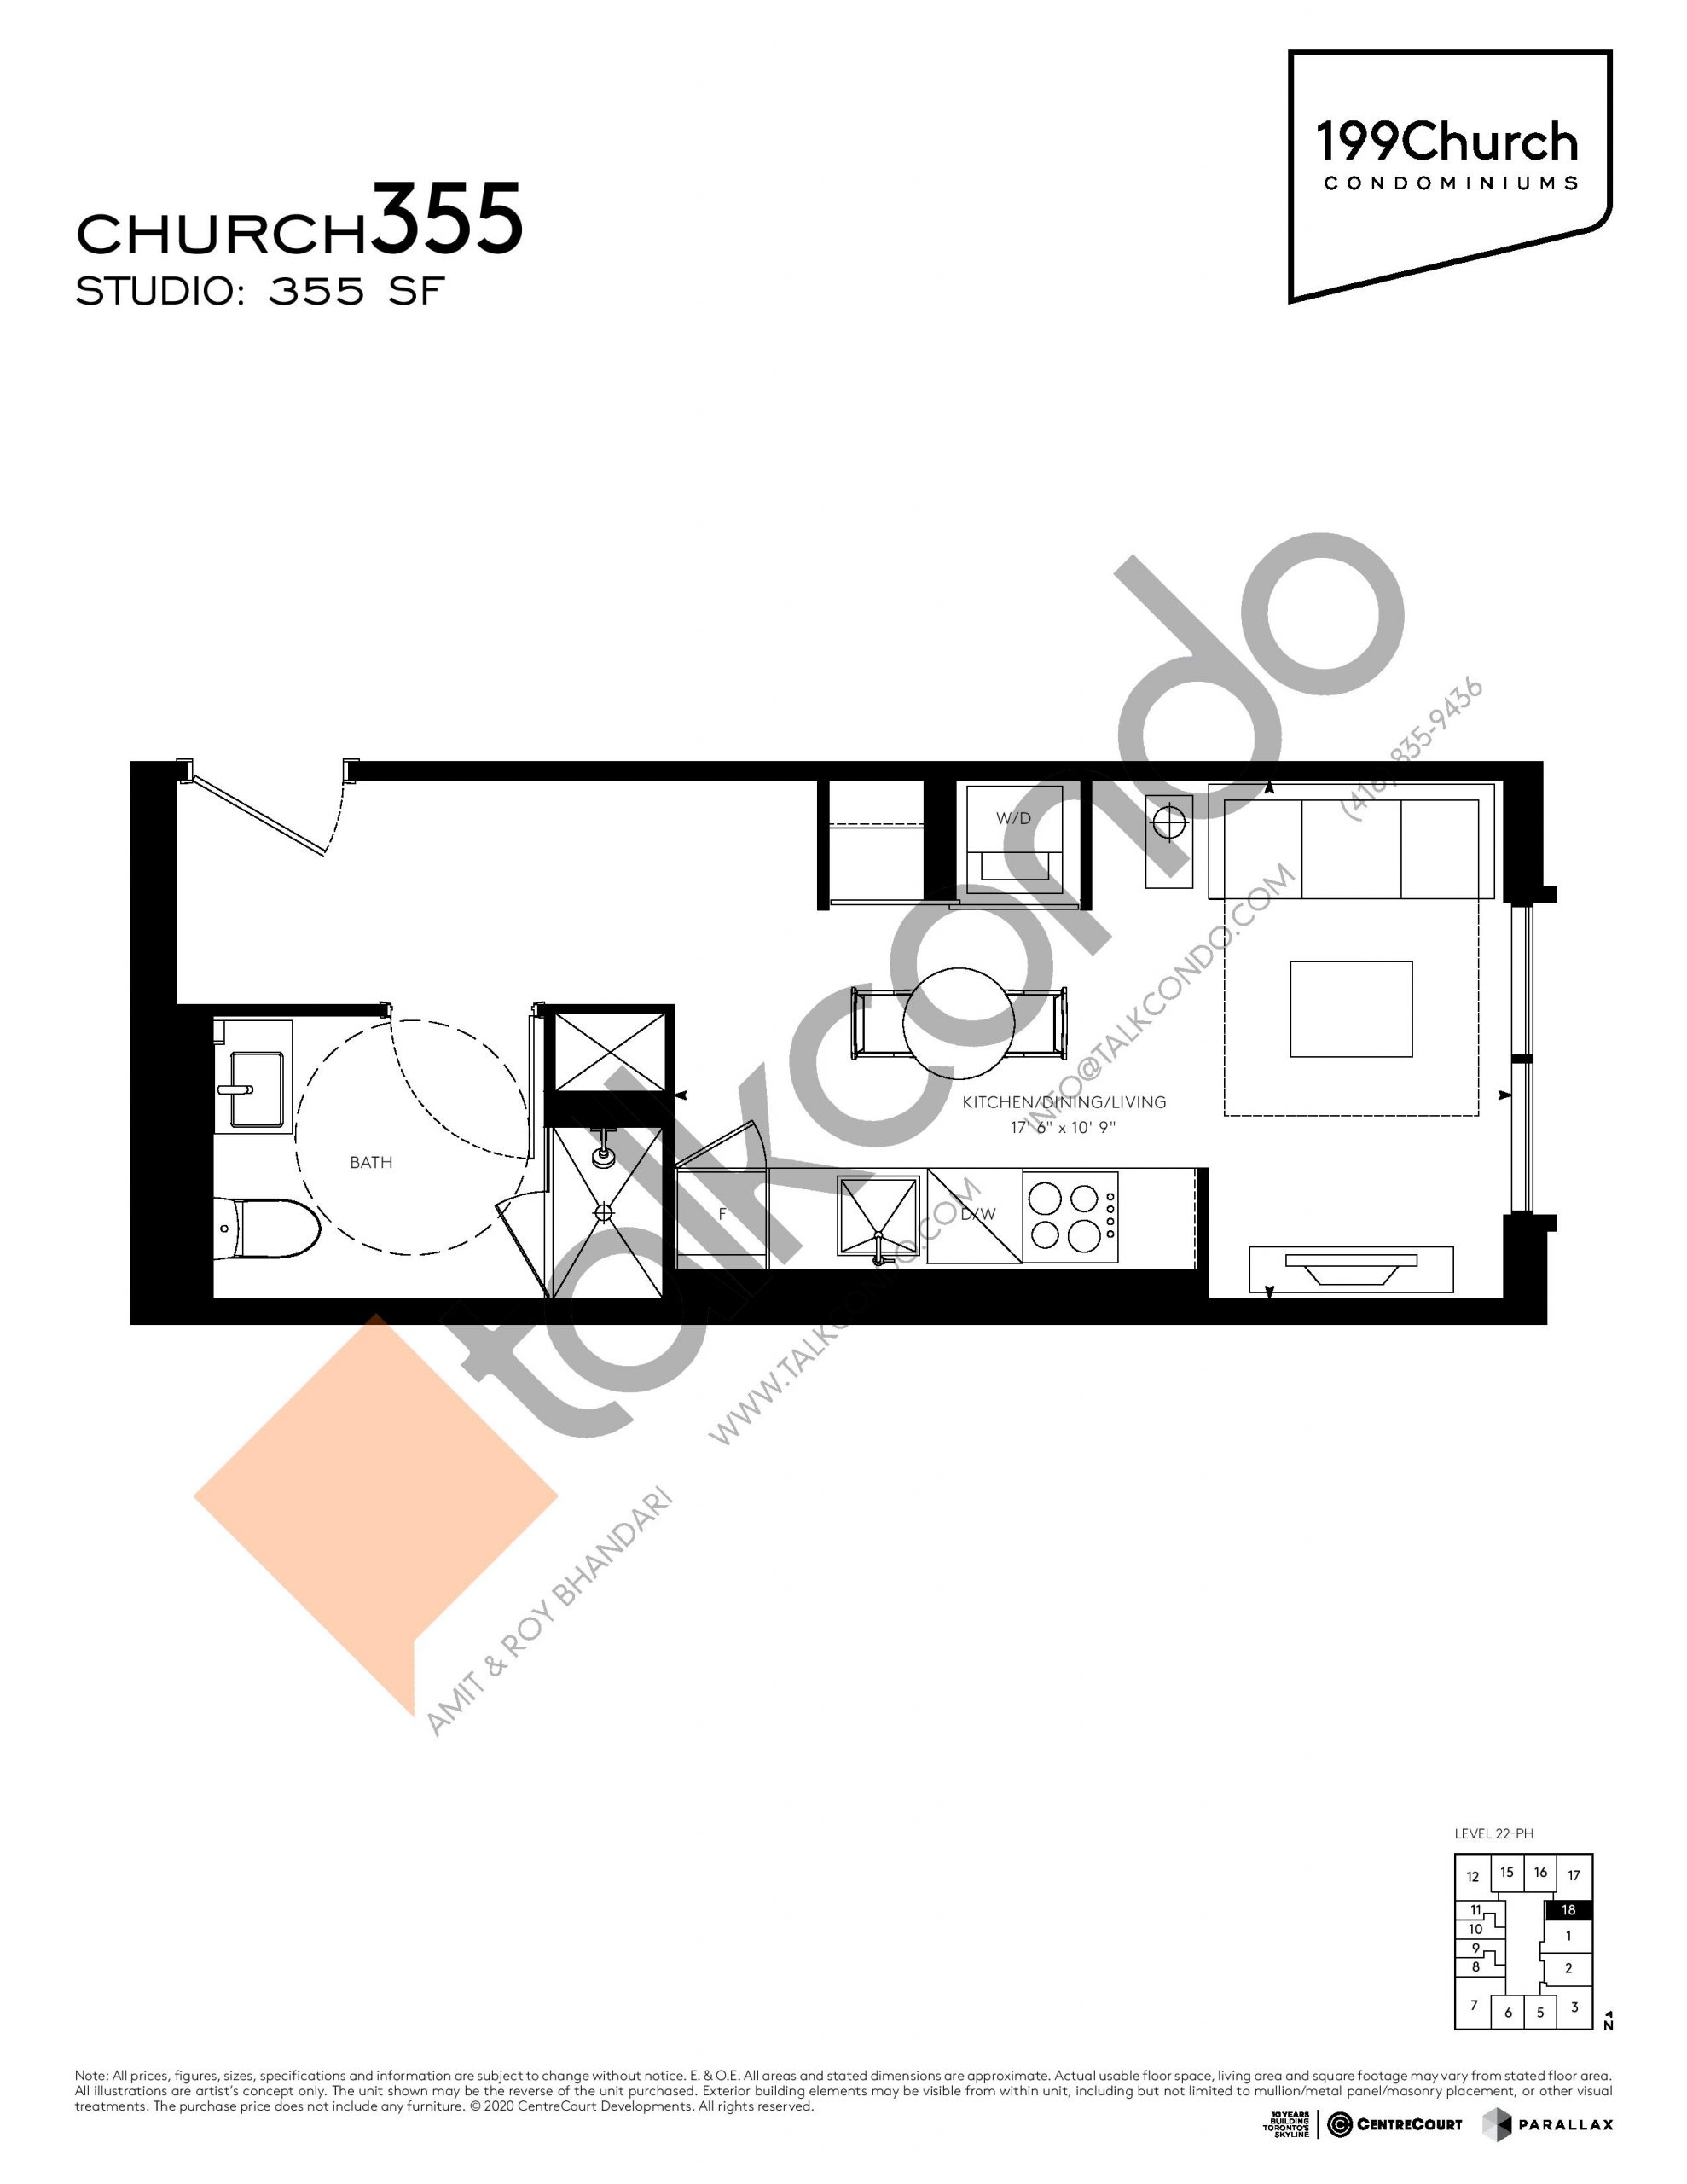 Church 355 Floor Plan at 199 Church Condos - 355 sq.ft